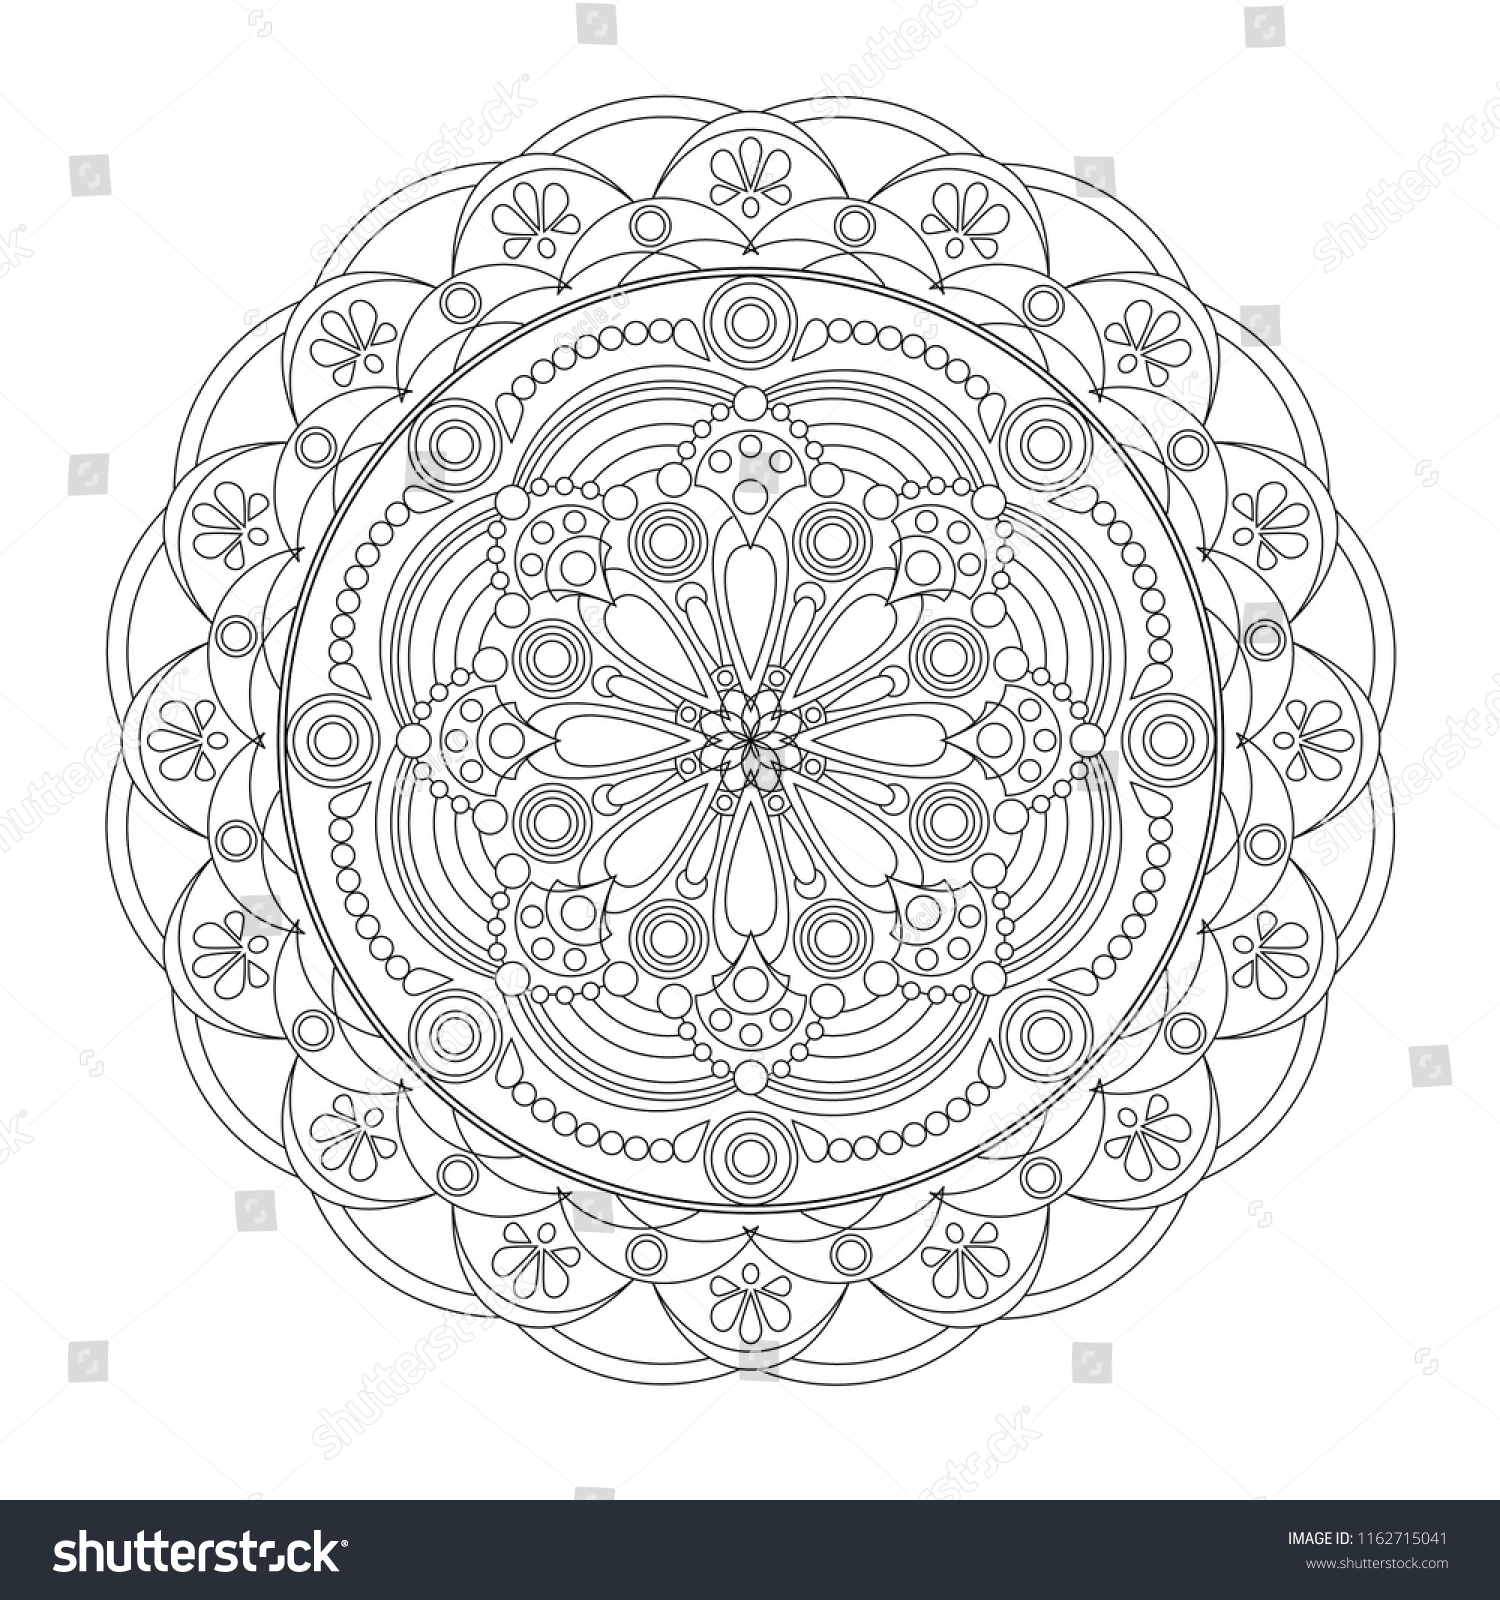 stock vector mandala coloring book page art therapy vintage decorative elements oriental pattern vector